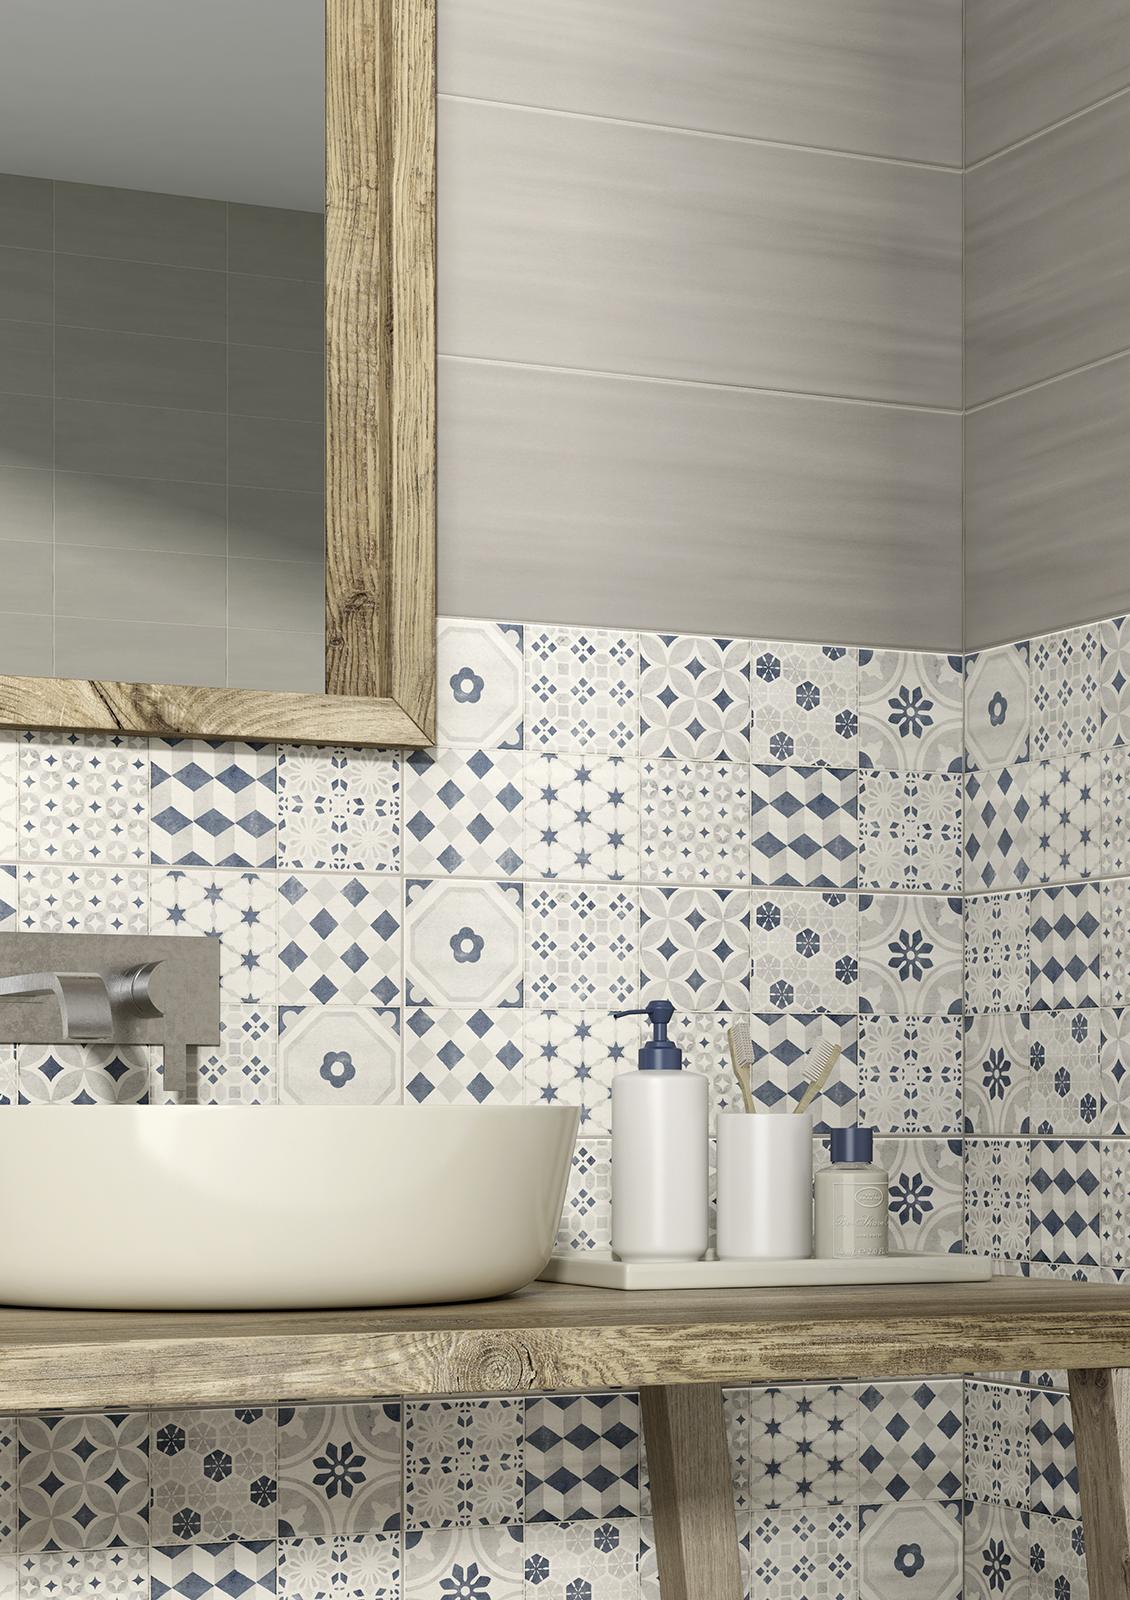 Paint - Kitchen and bathroom wall tiling | Marazzi